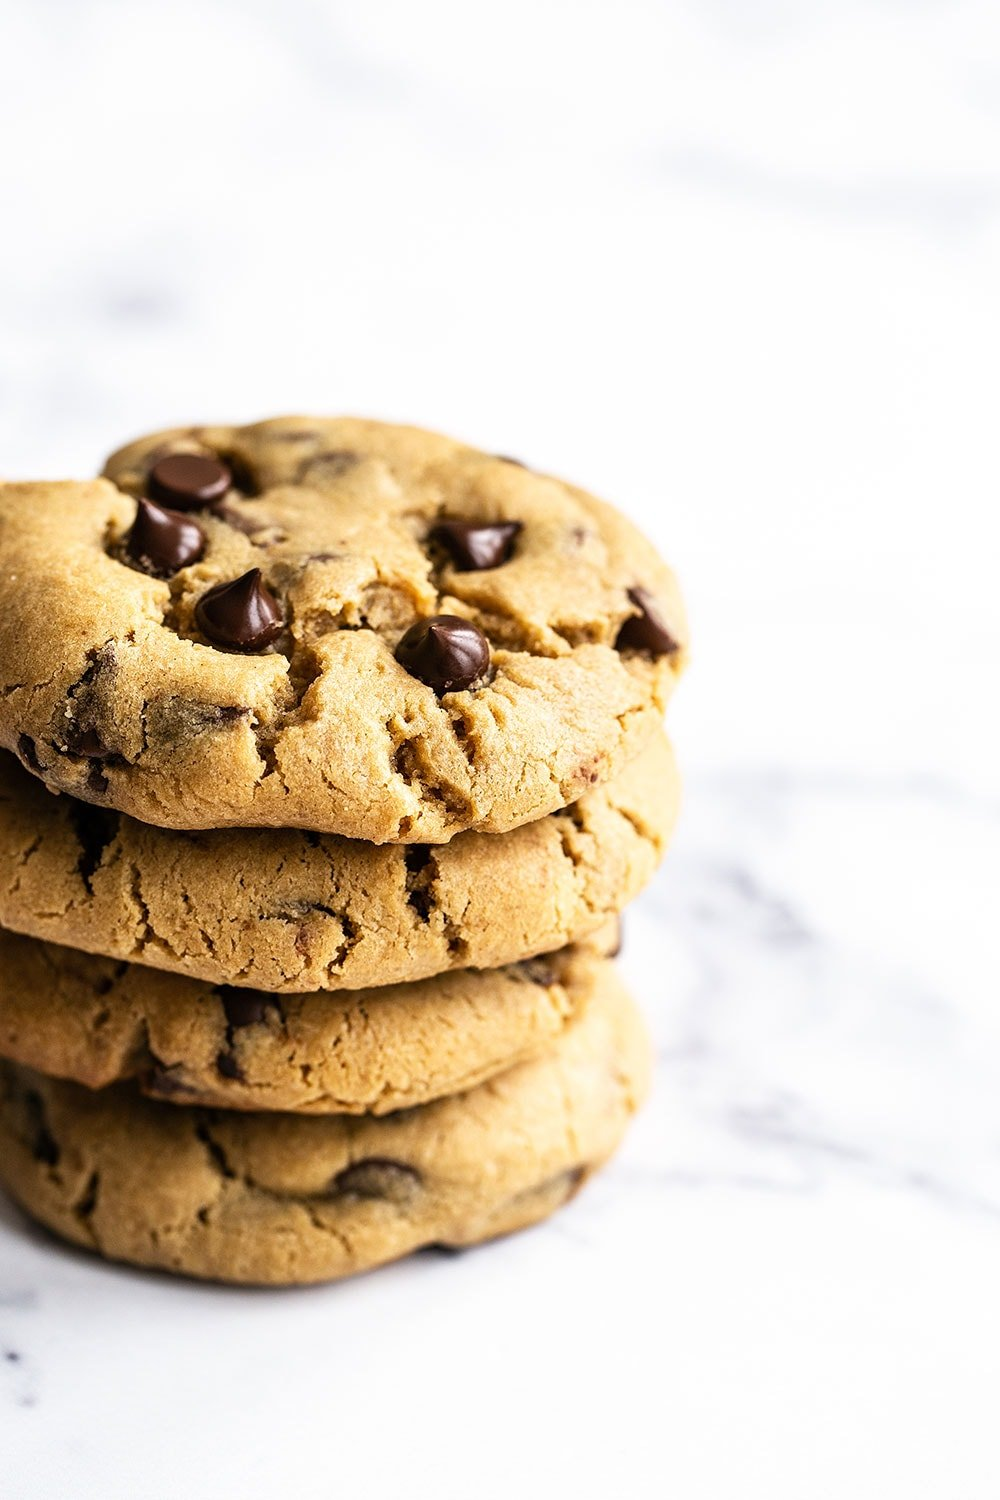 Easy chewy Peanut Butter Chocolate Chip Cookie recipe